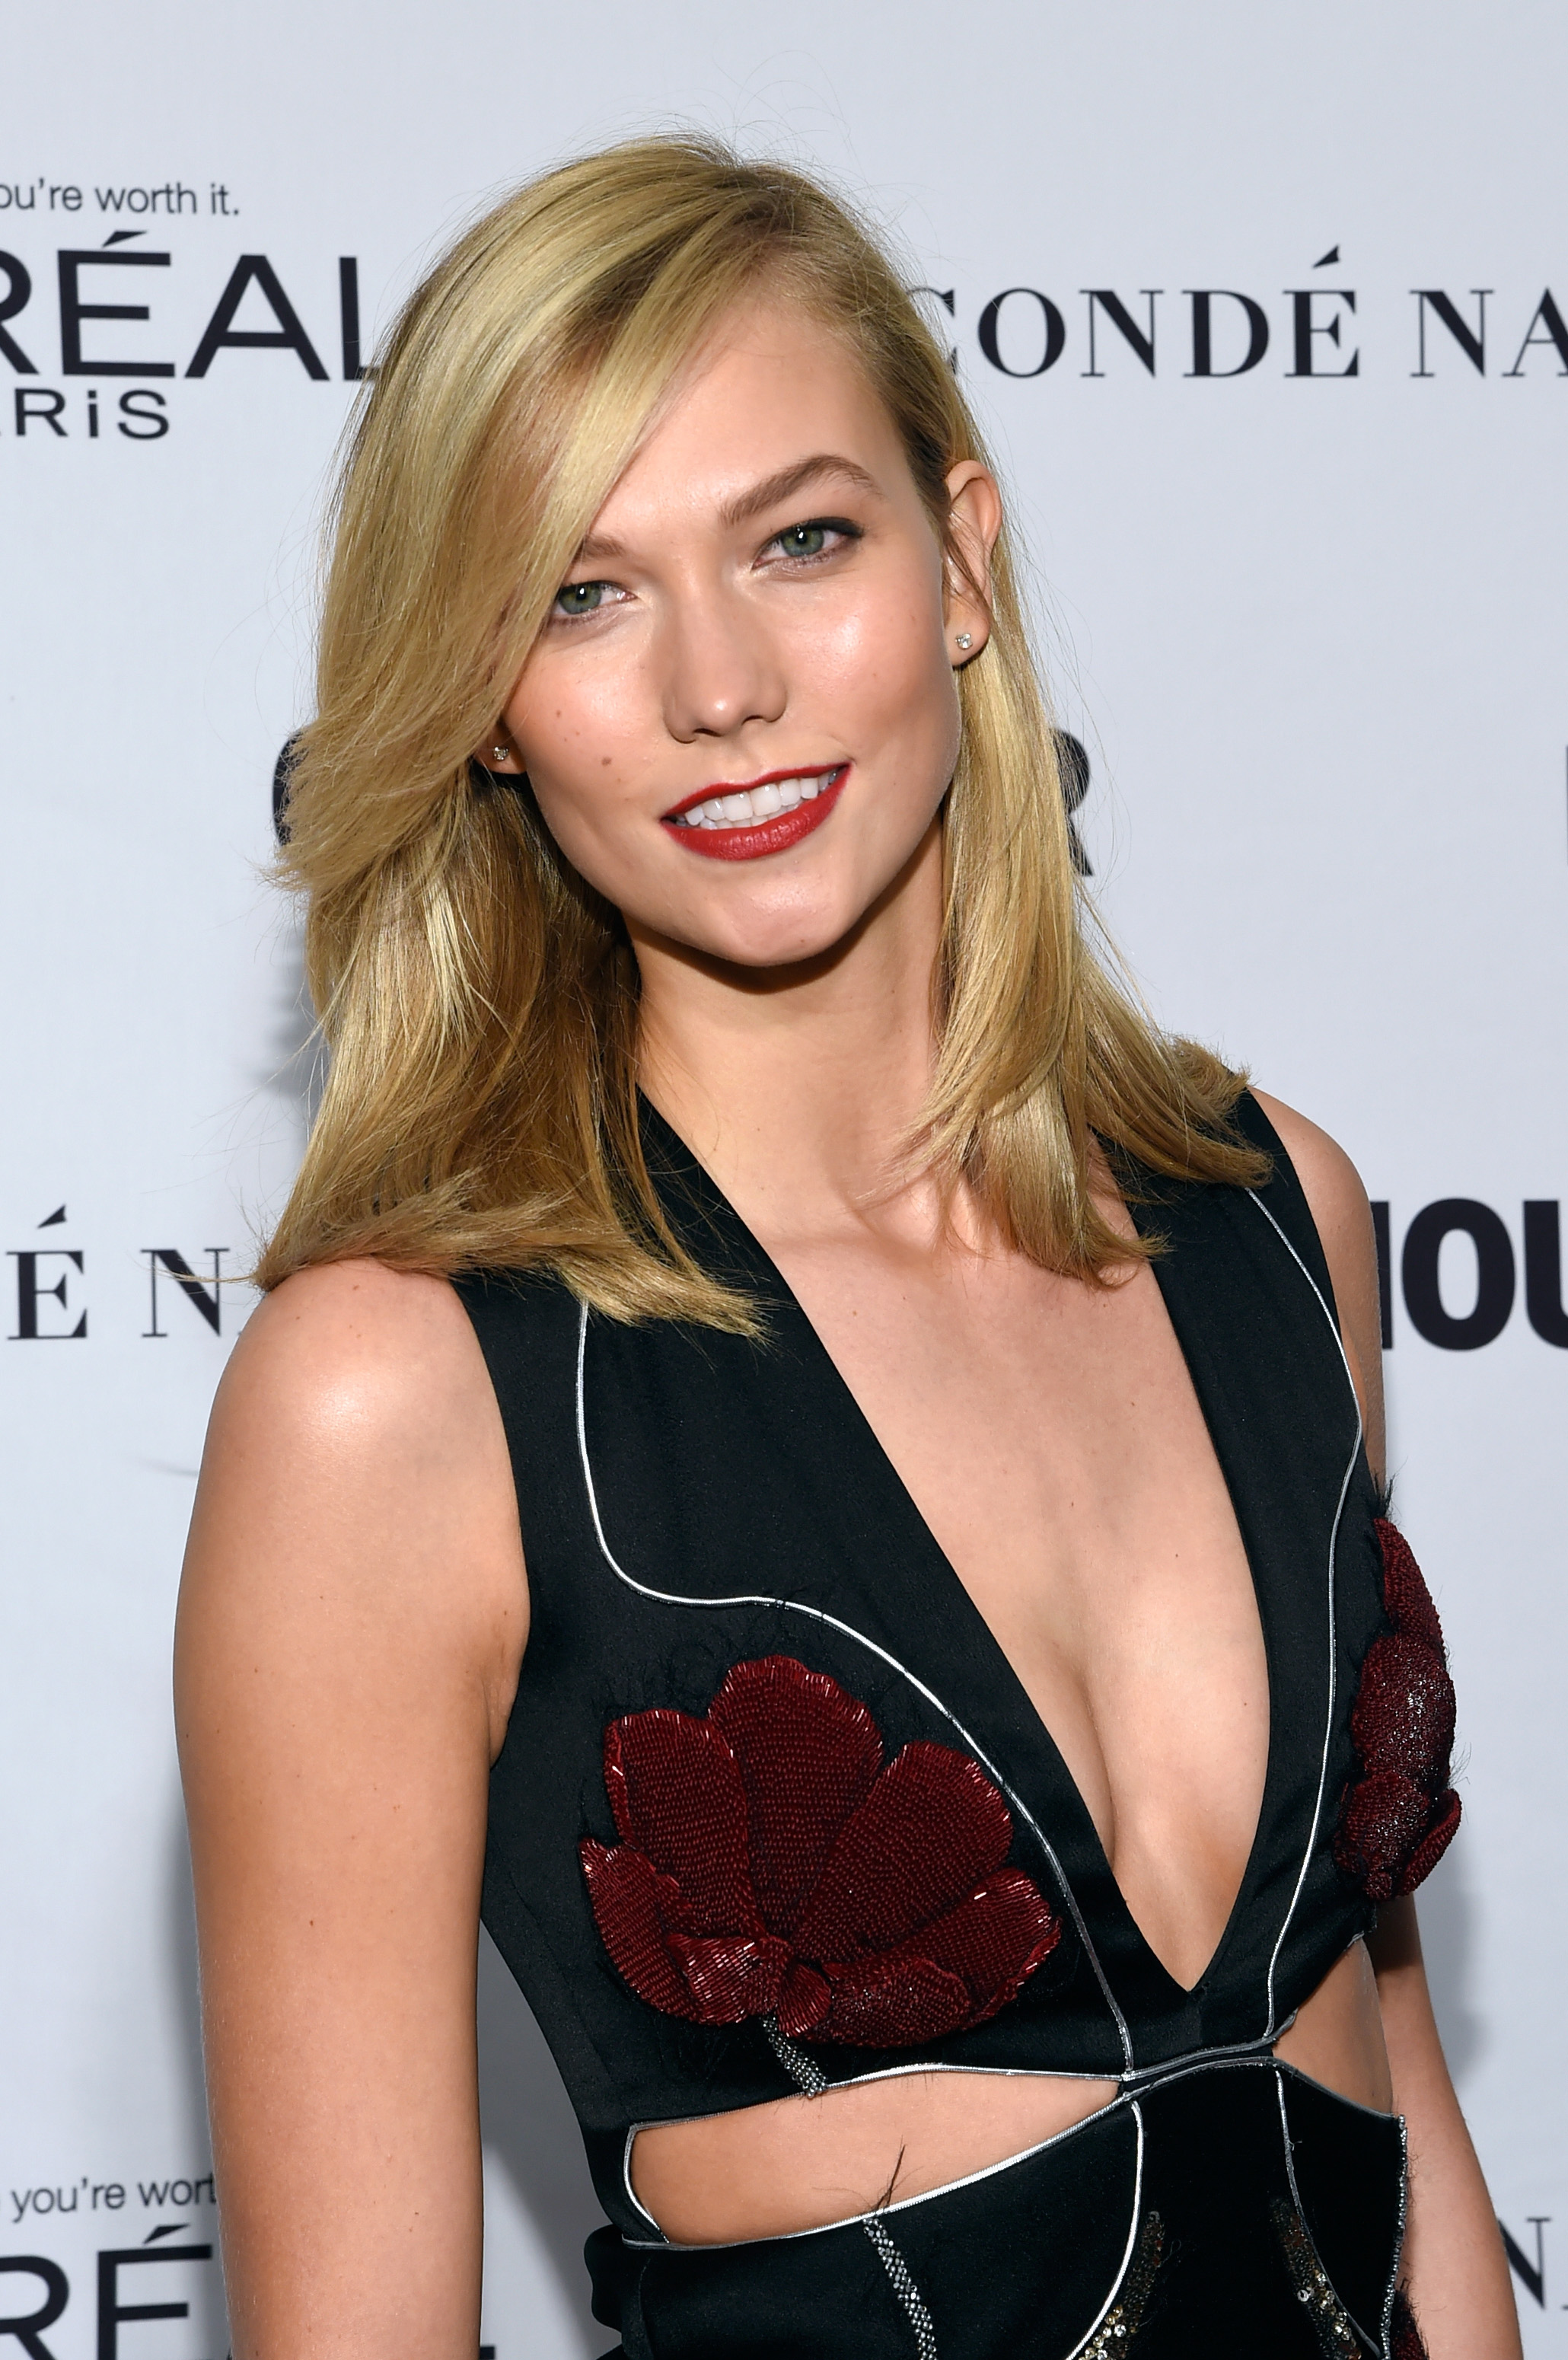 karlie kloss Glamour's Cindi Leive Honors The 2014 Women Of The Year ...: 5gazo.ebb.jp/karlie+kloss/pic1.html